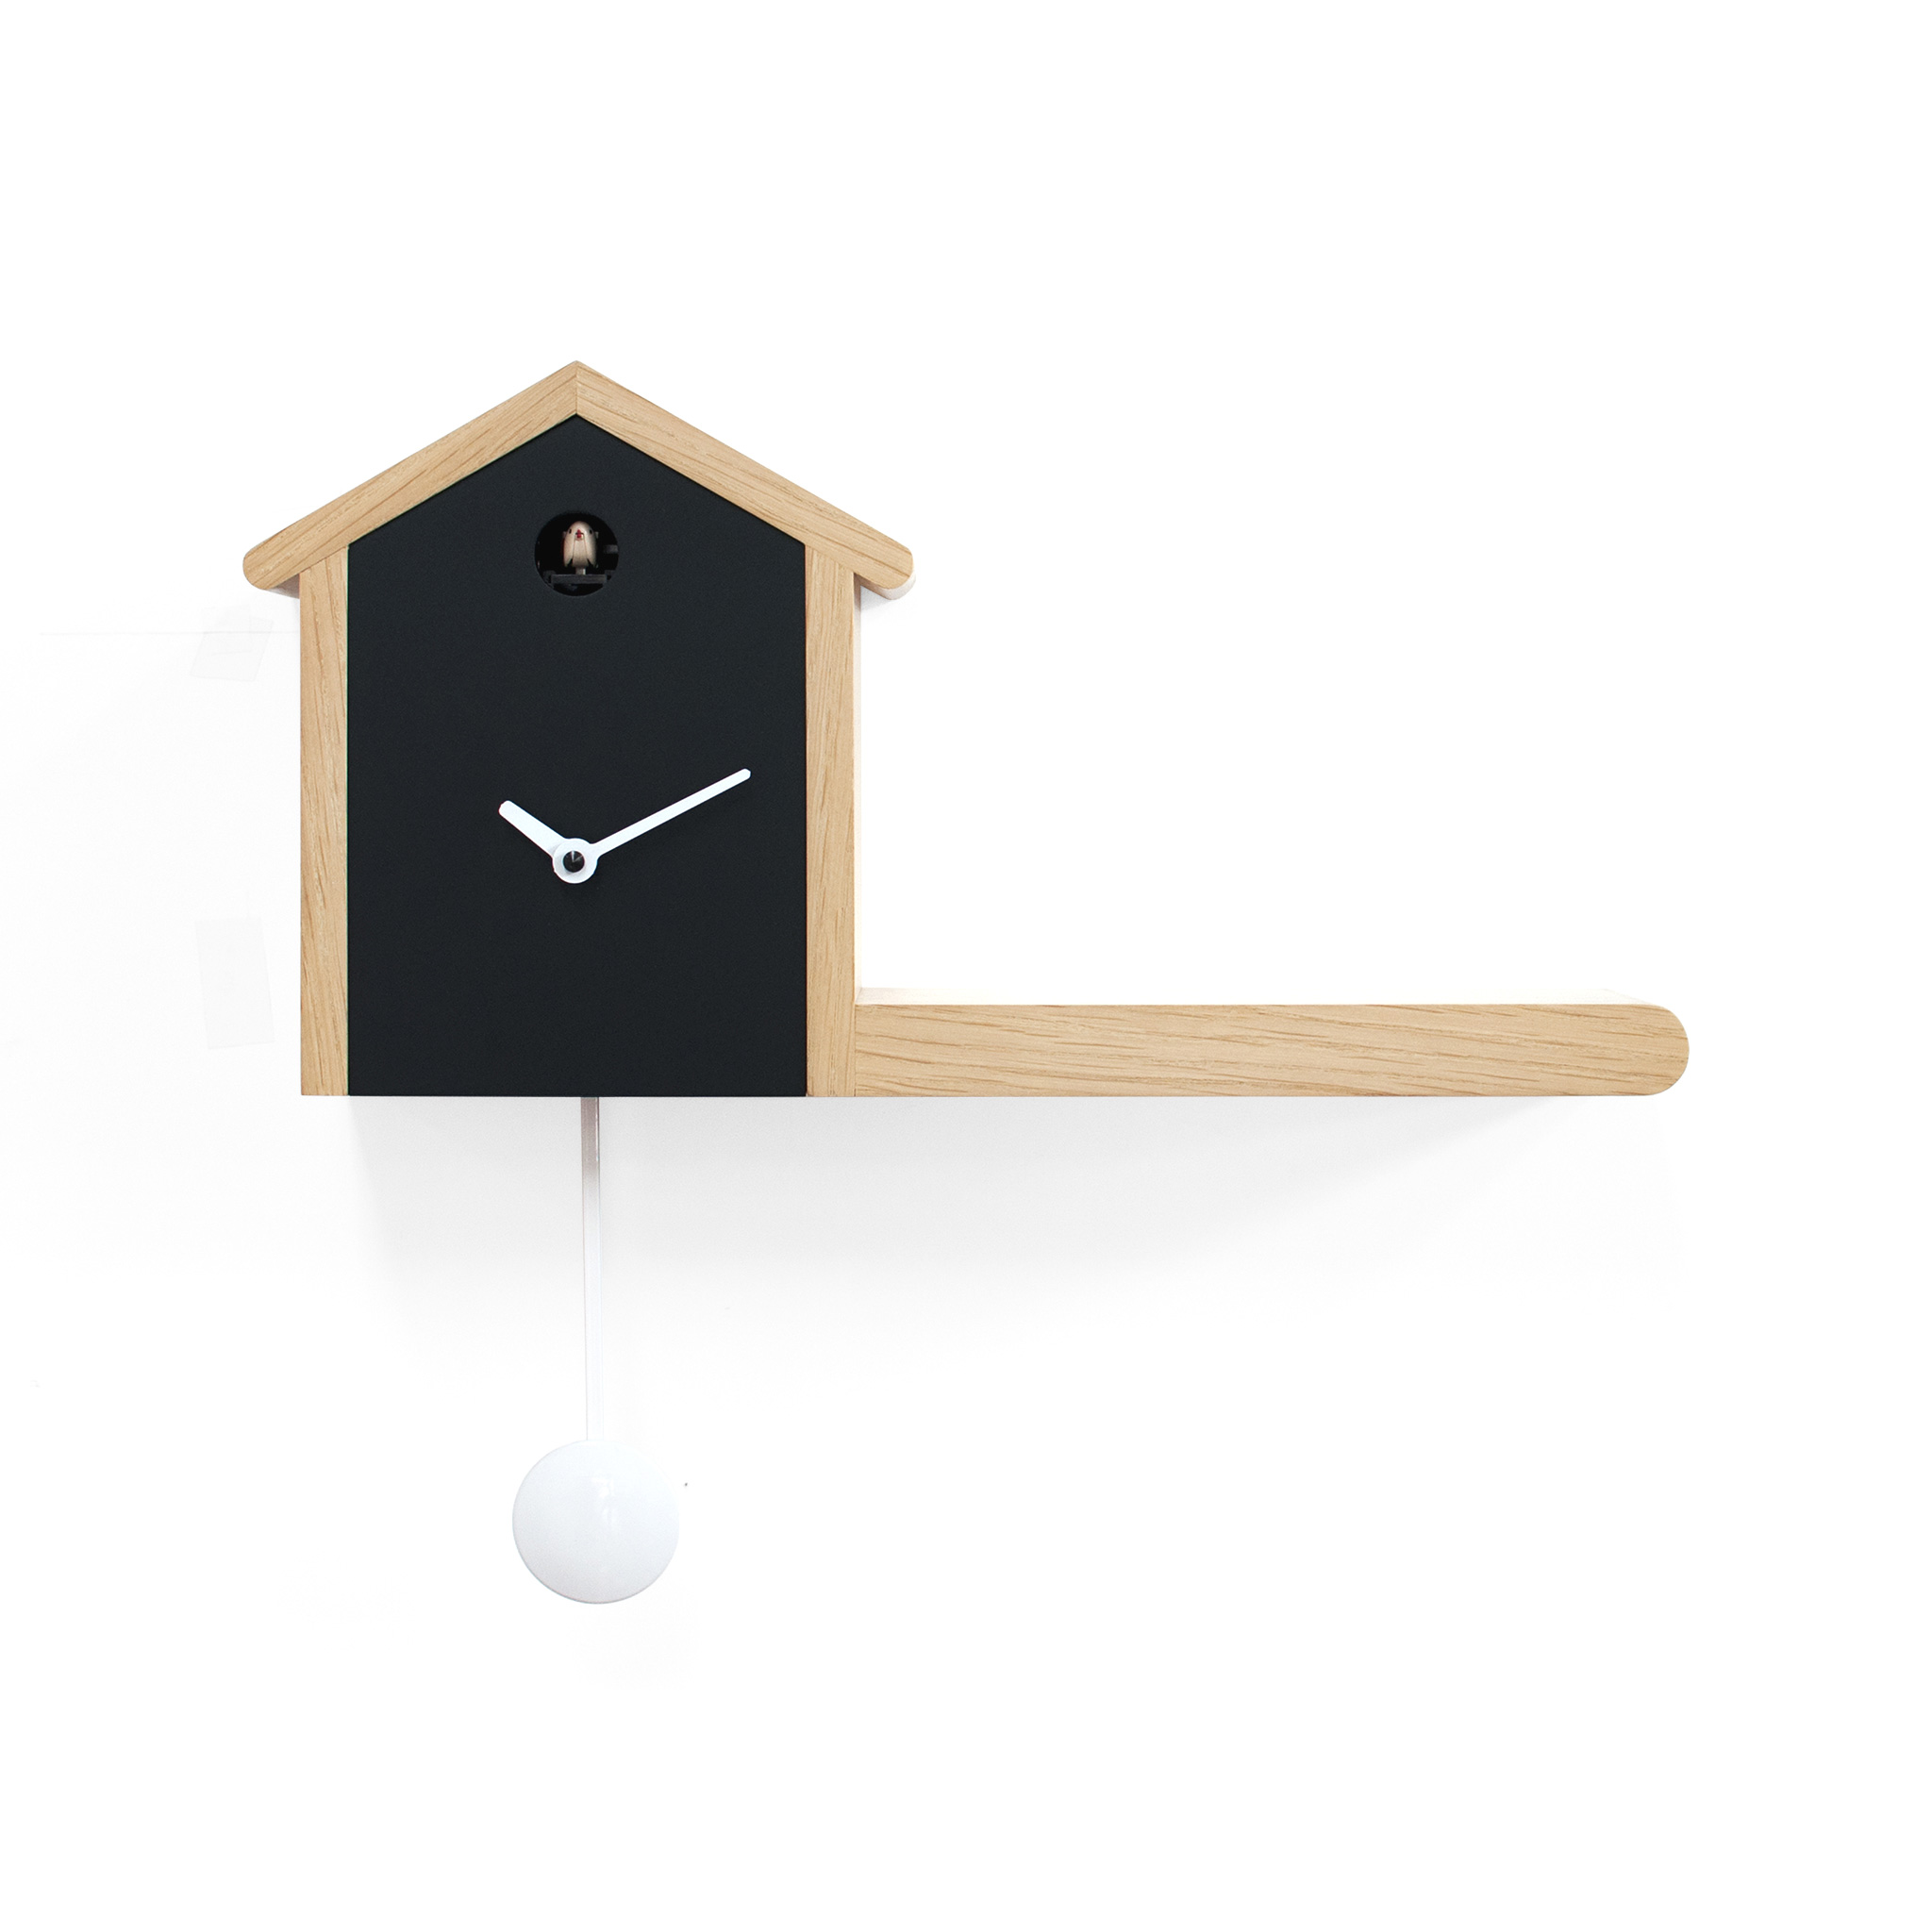 Cuckoo clock my house italian designer wall clocks progetti cuckoo clock my house italian designer wall clocks amipublicfo Image collections